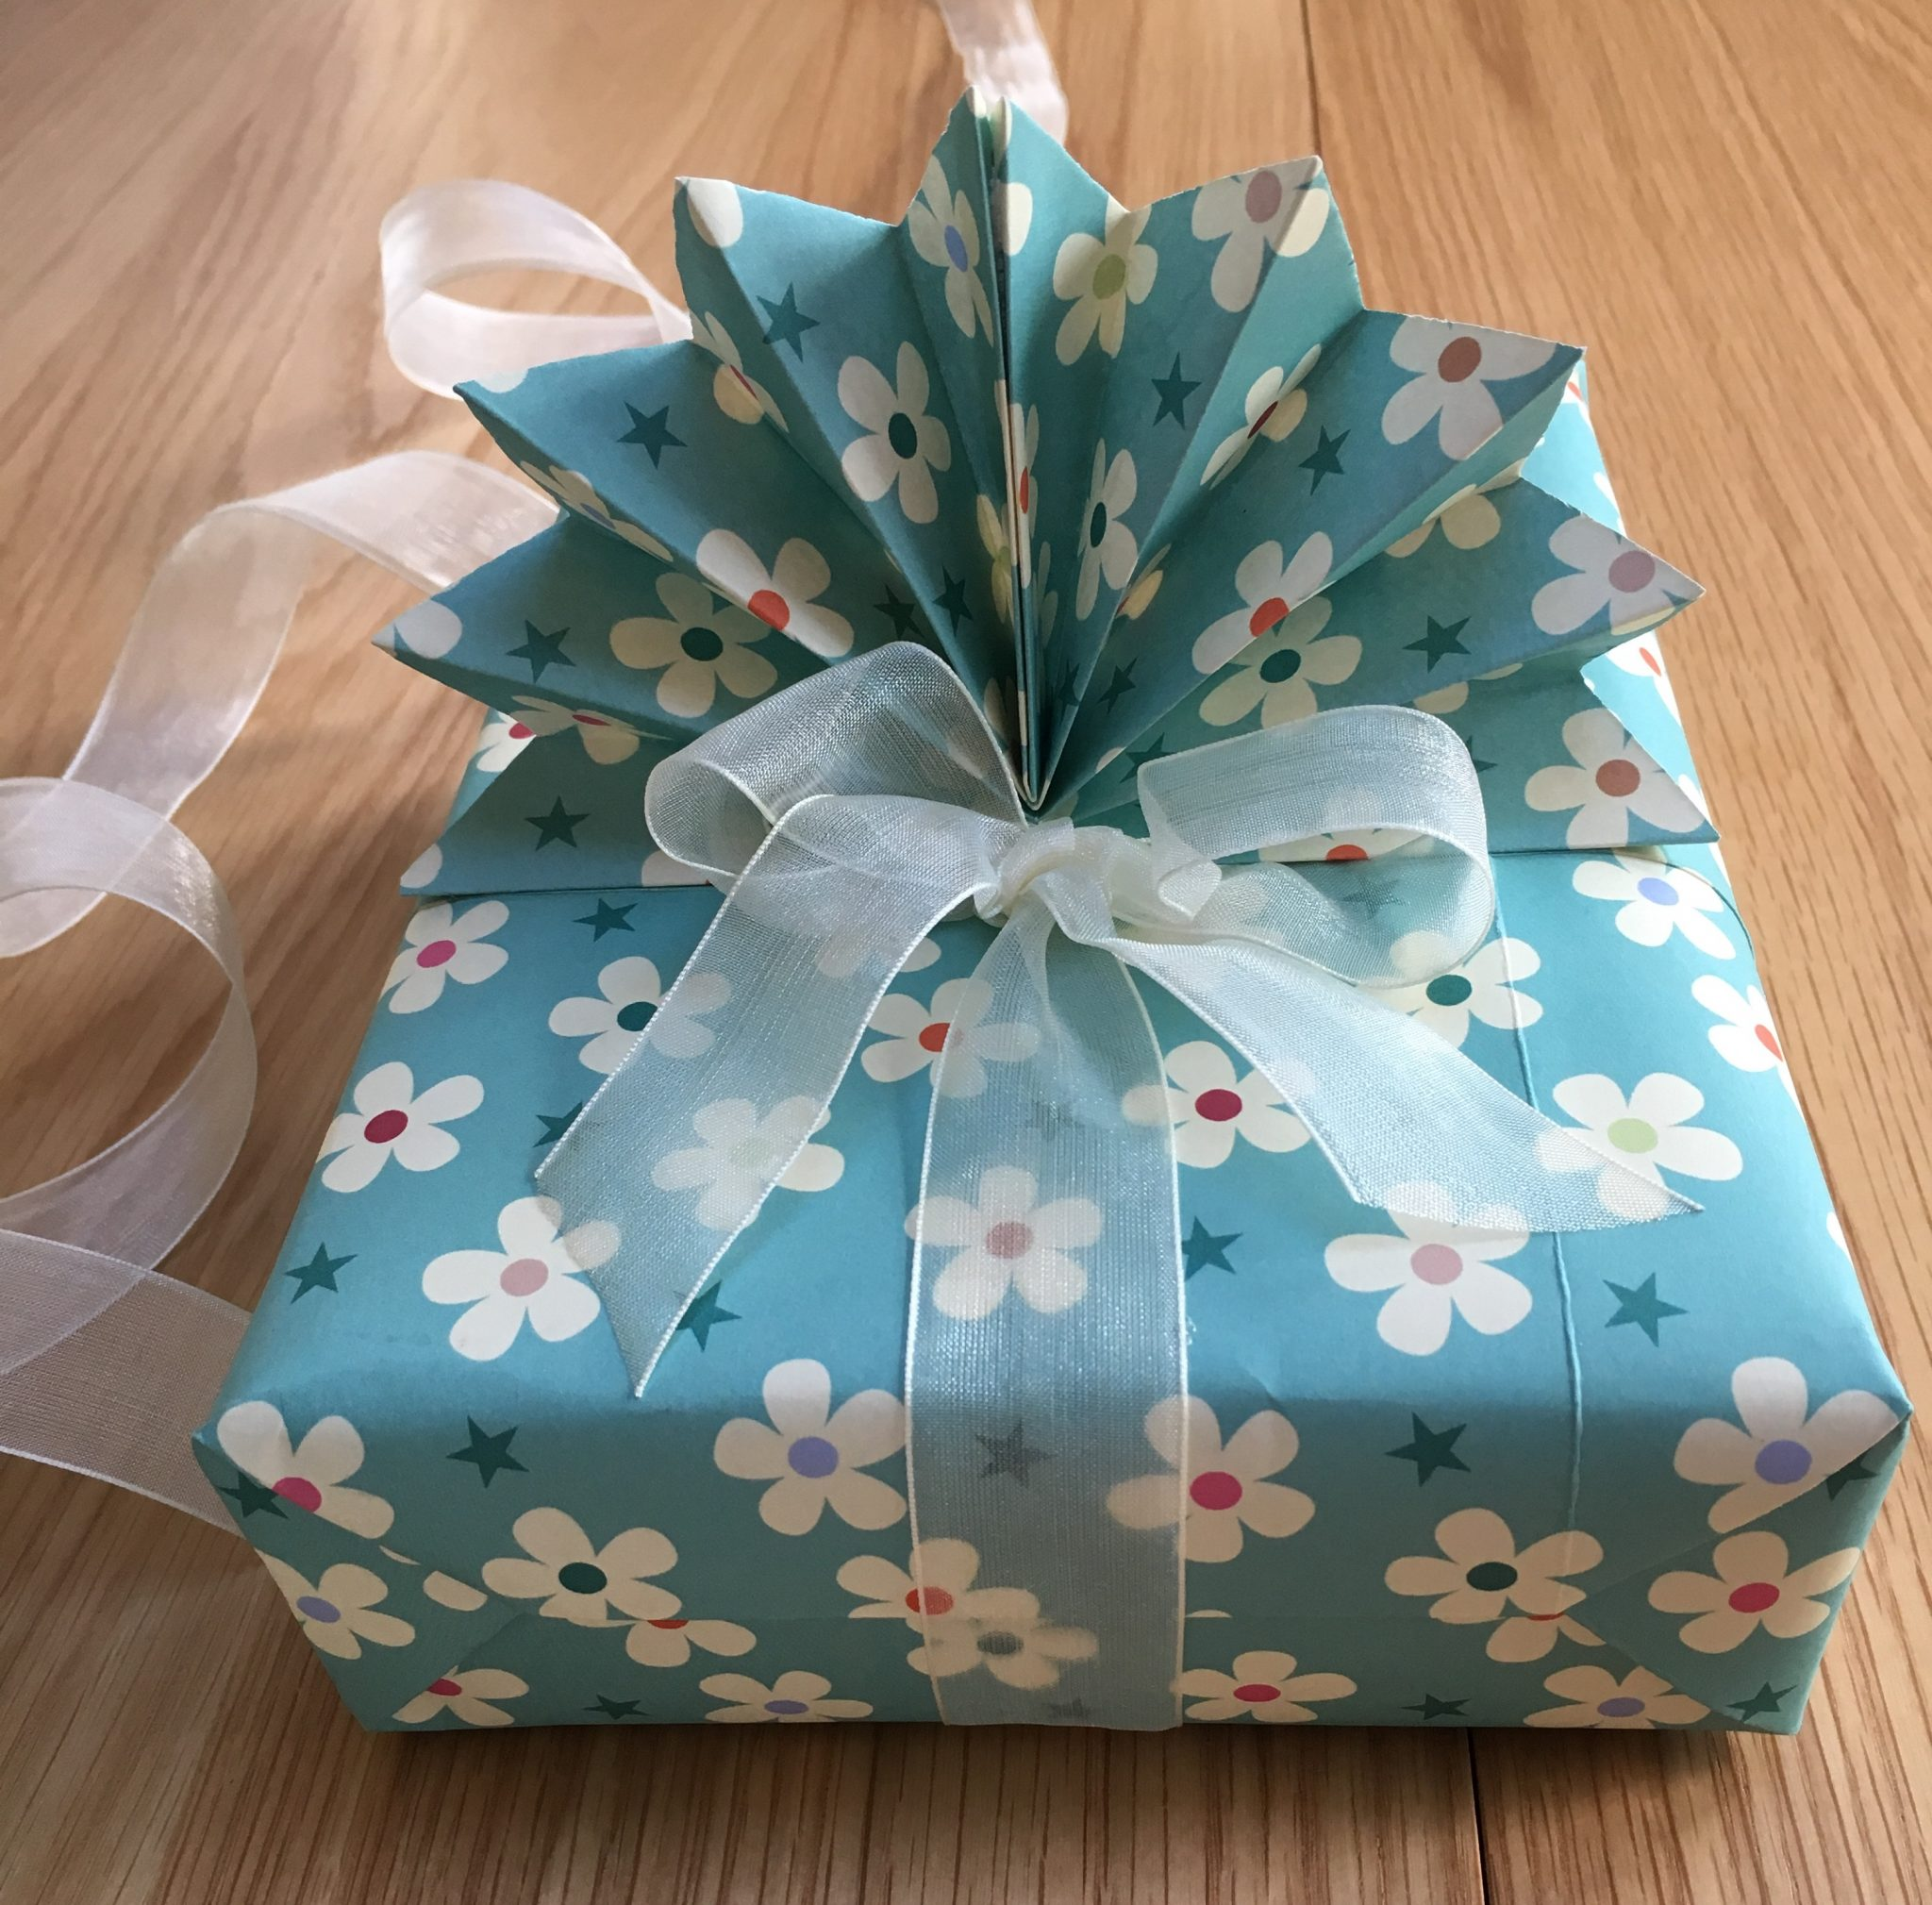 Floral giftwrapped box with a bow & fan decoration